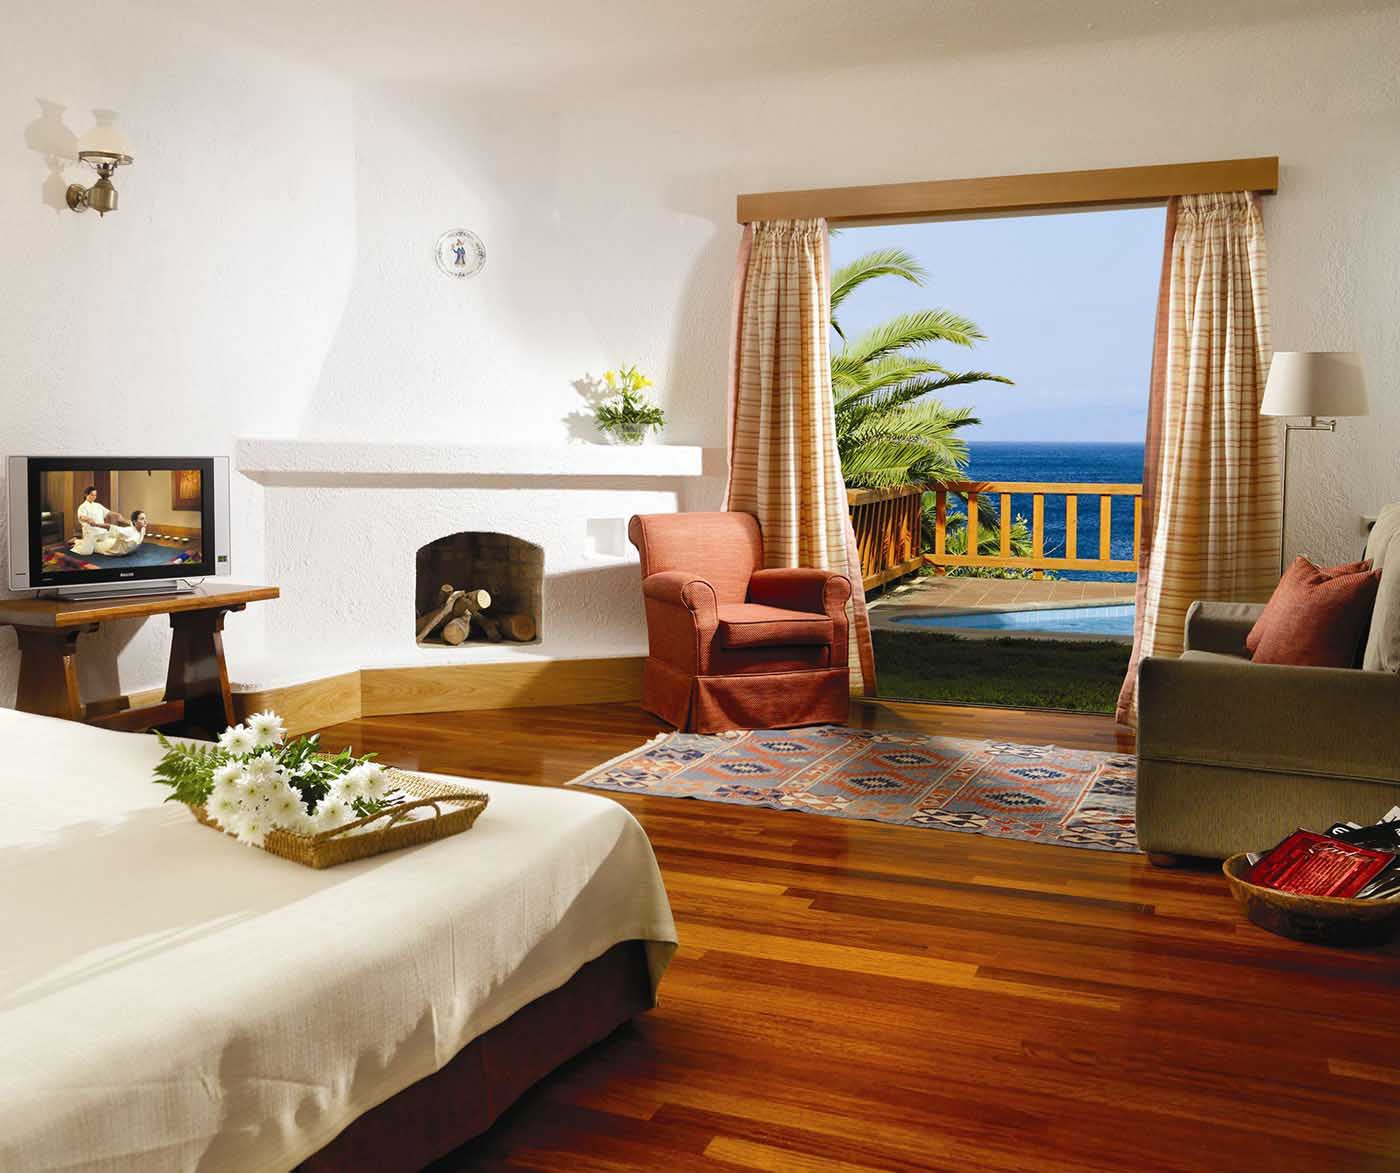 Asteri hotels & resorts, 50% discount for early bookings, Asteri, Rethymnon, Crete, Greece